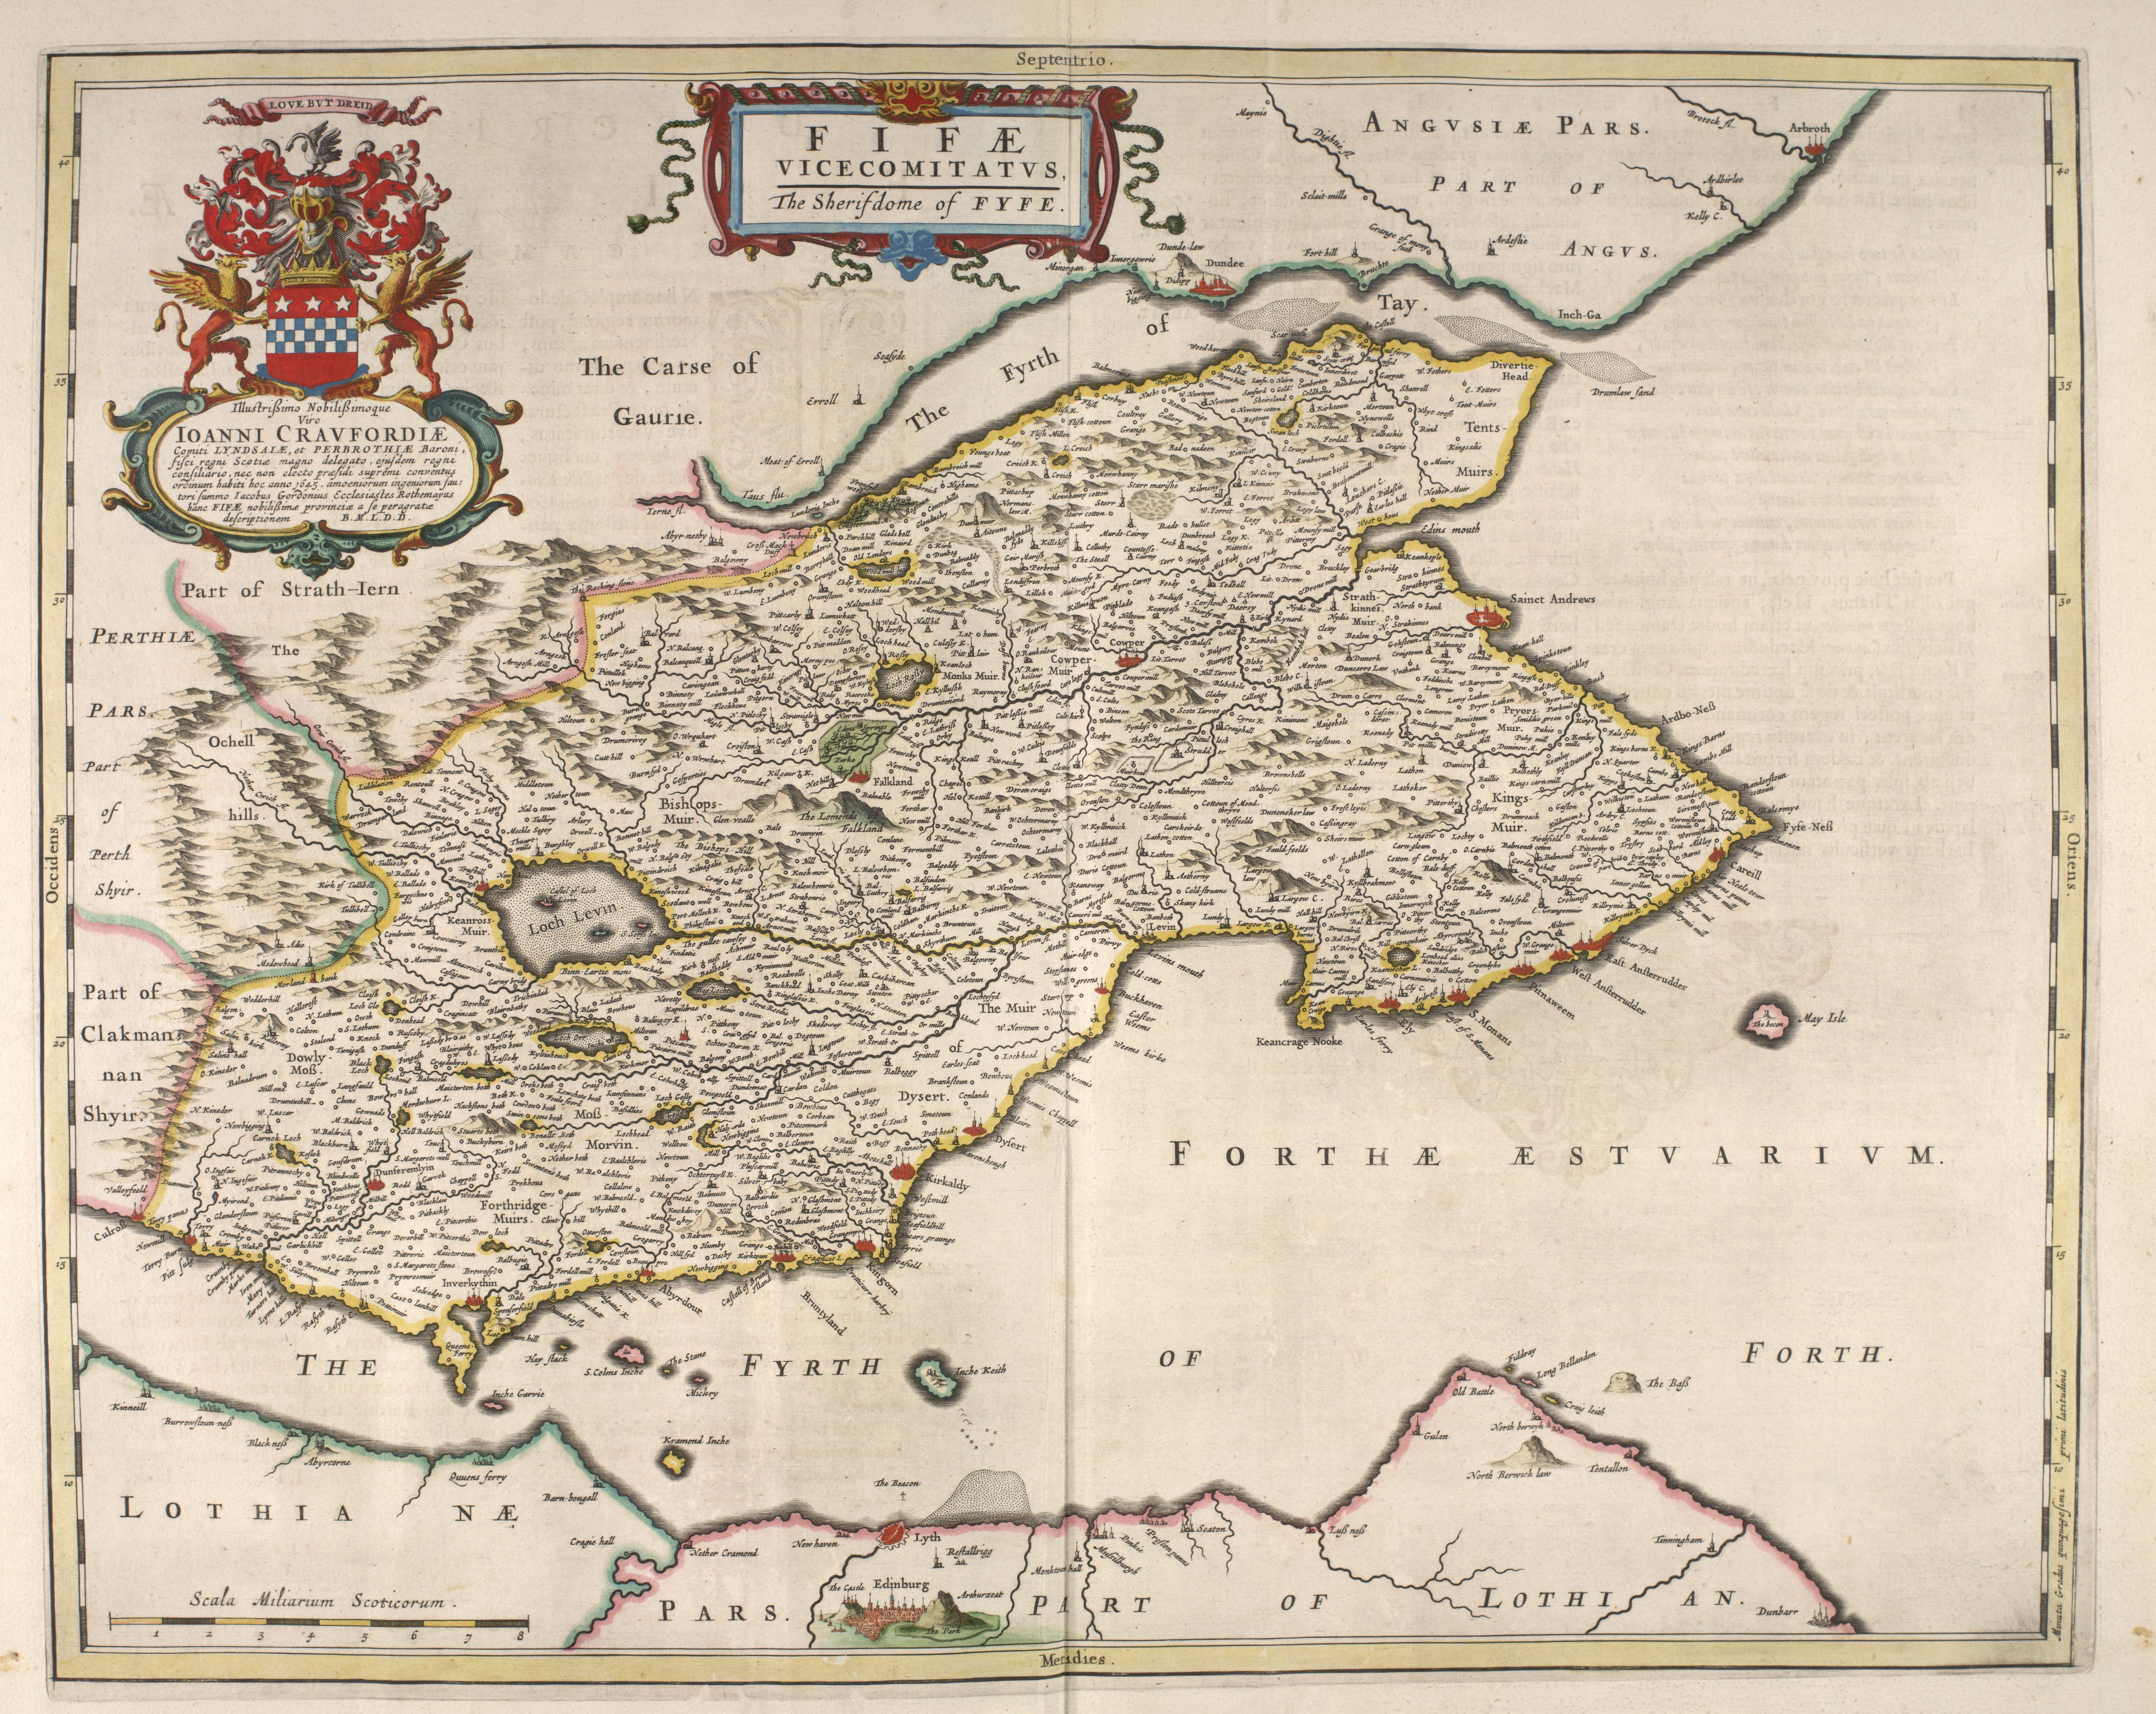 File:Blaeu - Atlas of Scotland 1654 - FIFÆ VICECOMITATUS - Fife.jpg